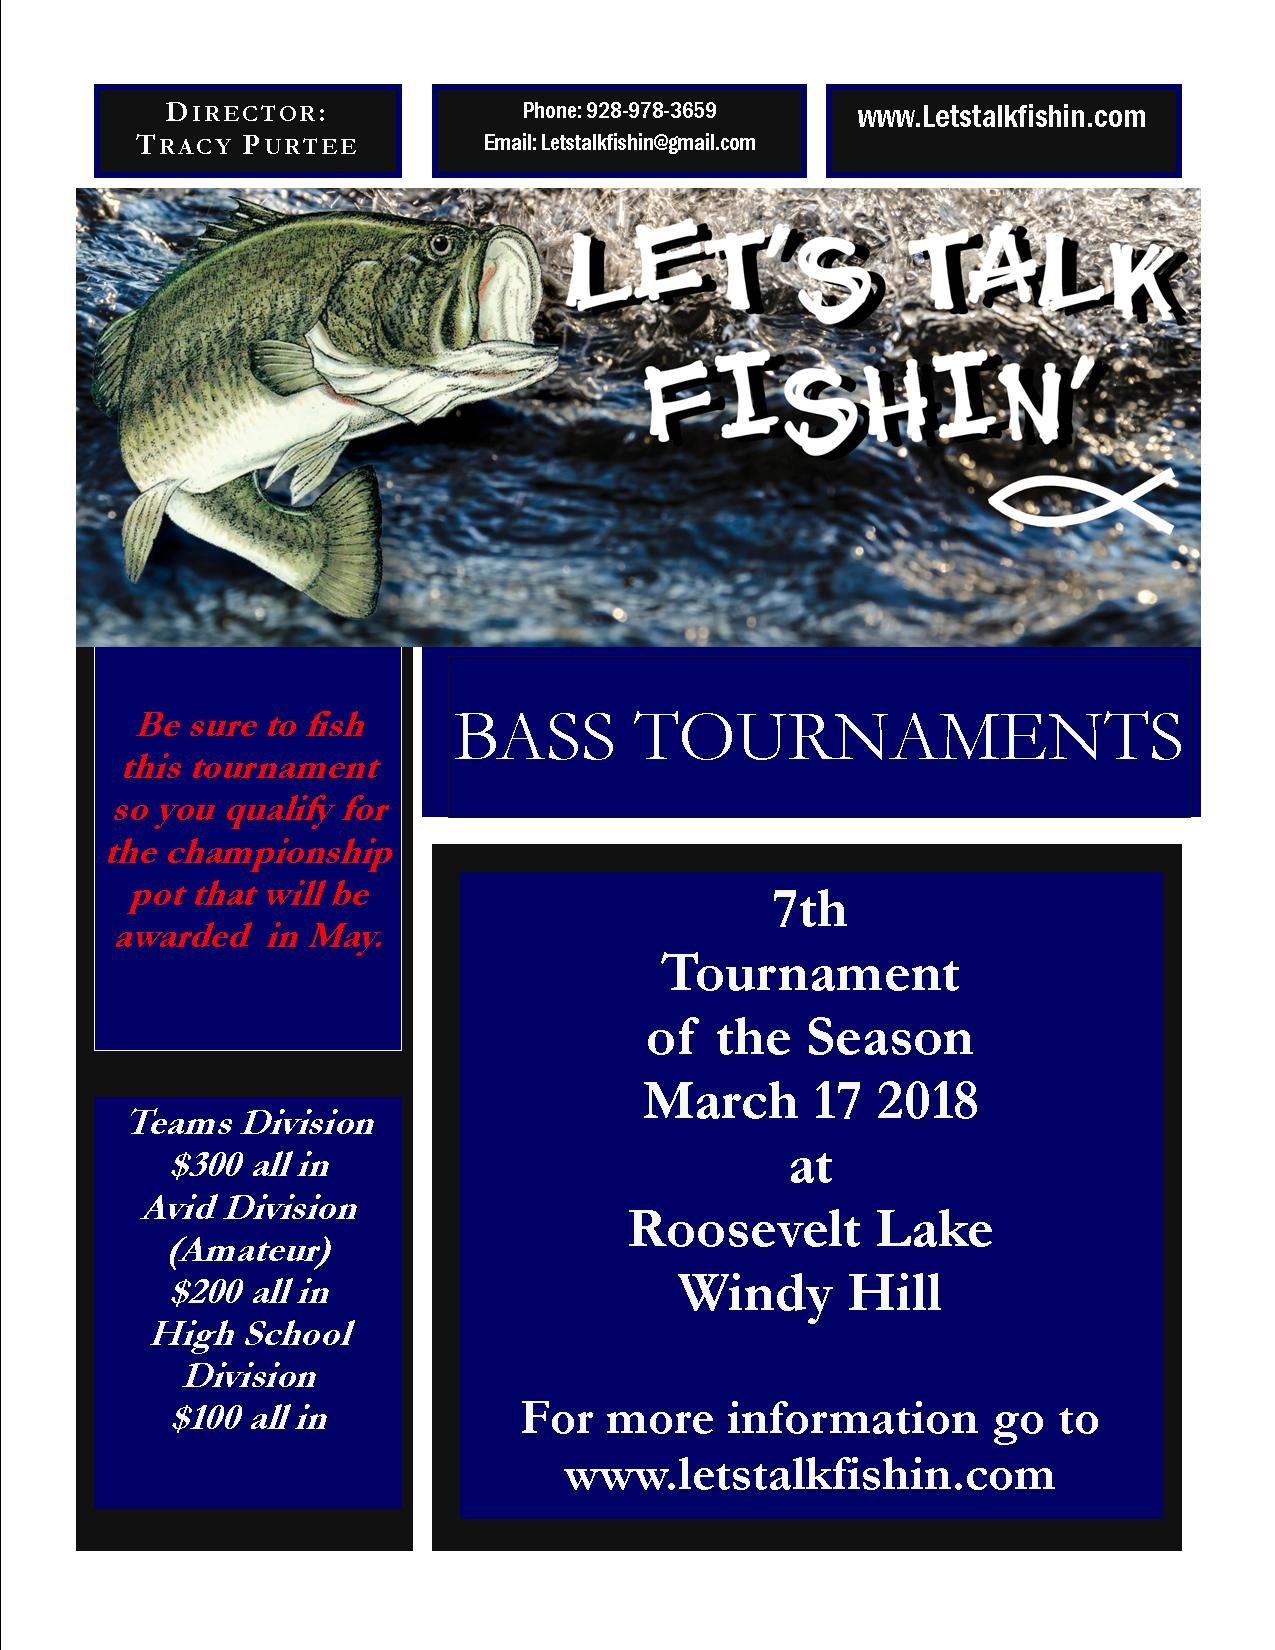 Click image for larger version  Name:7th Tournament.jpg Views:946 Size:283.6 KB ID:96826